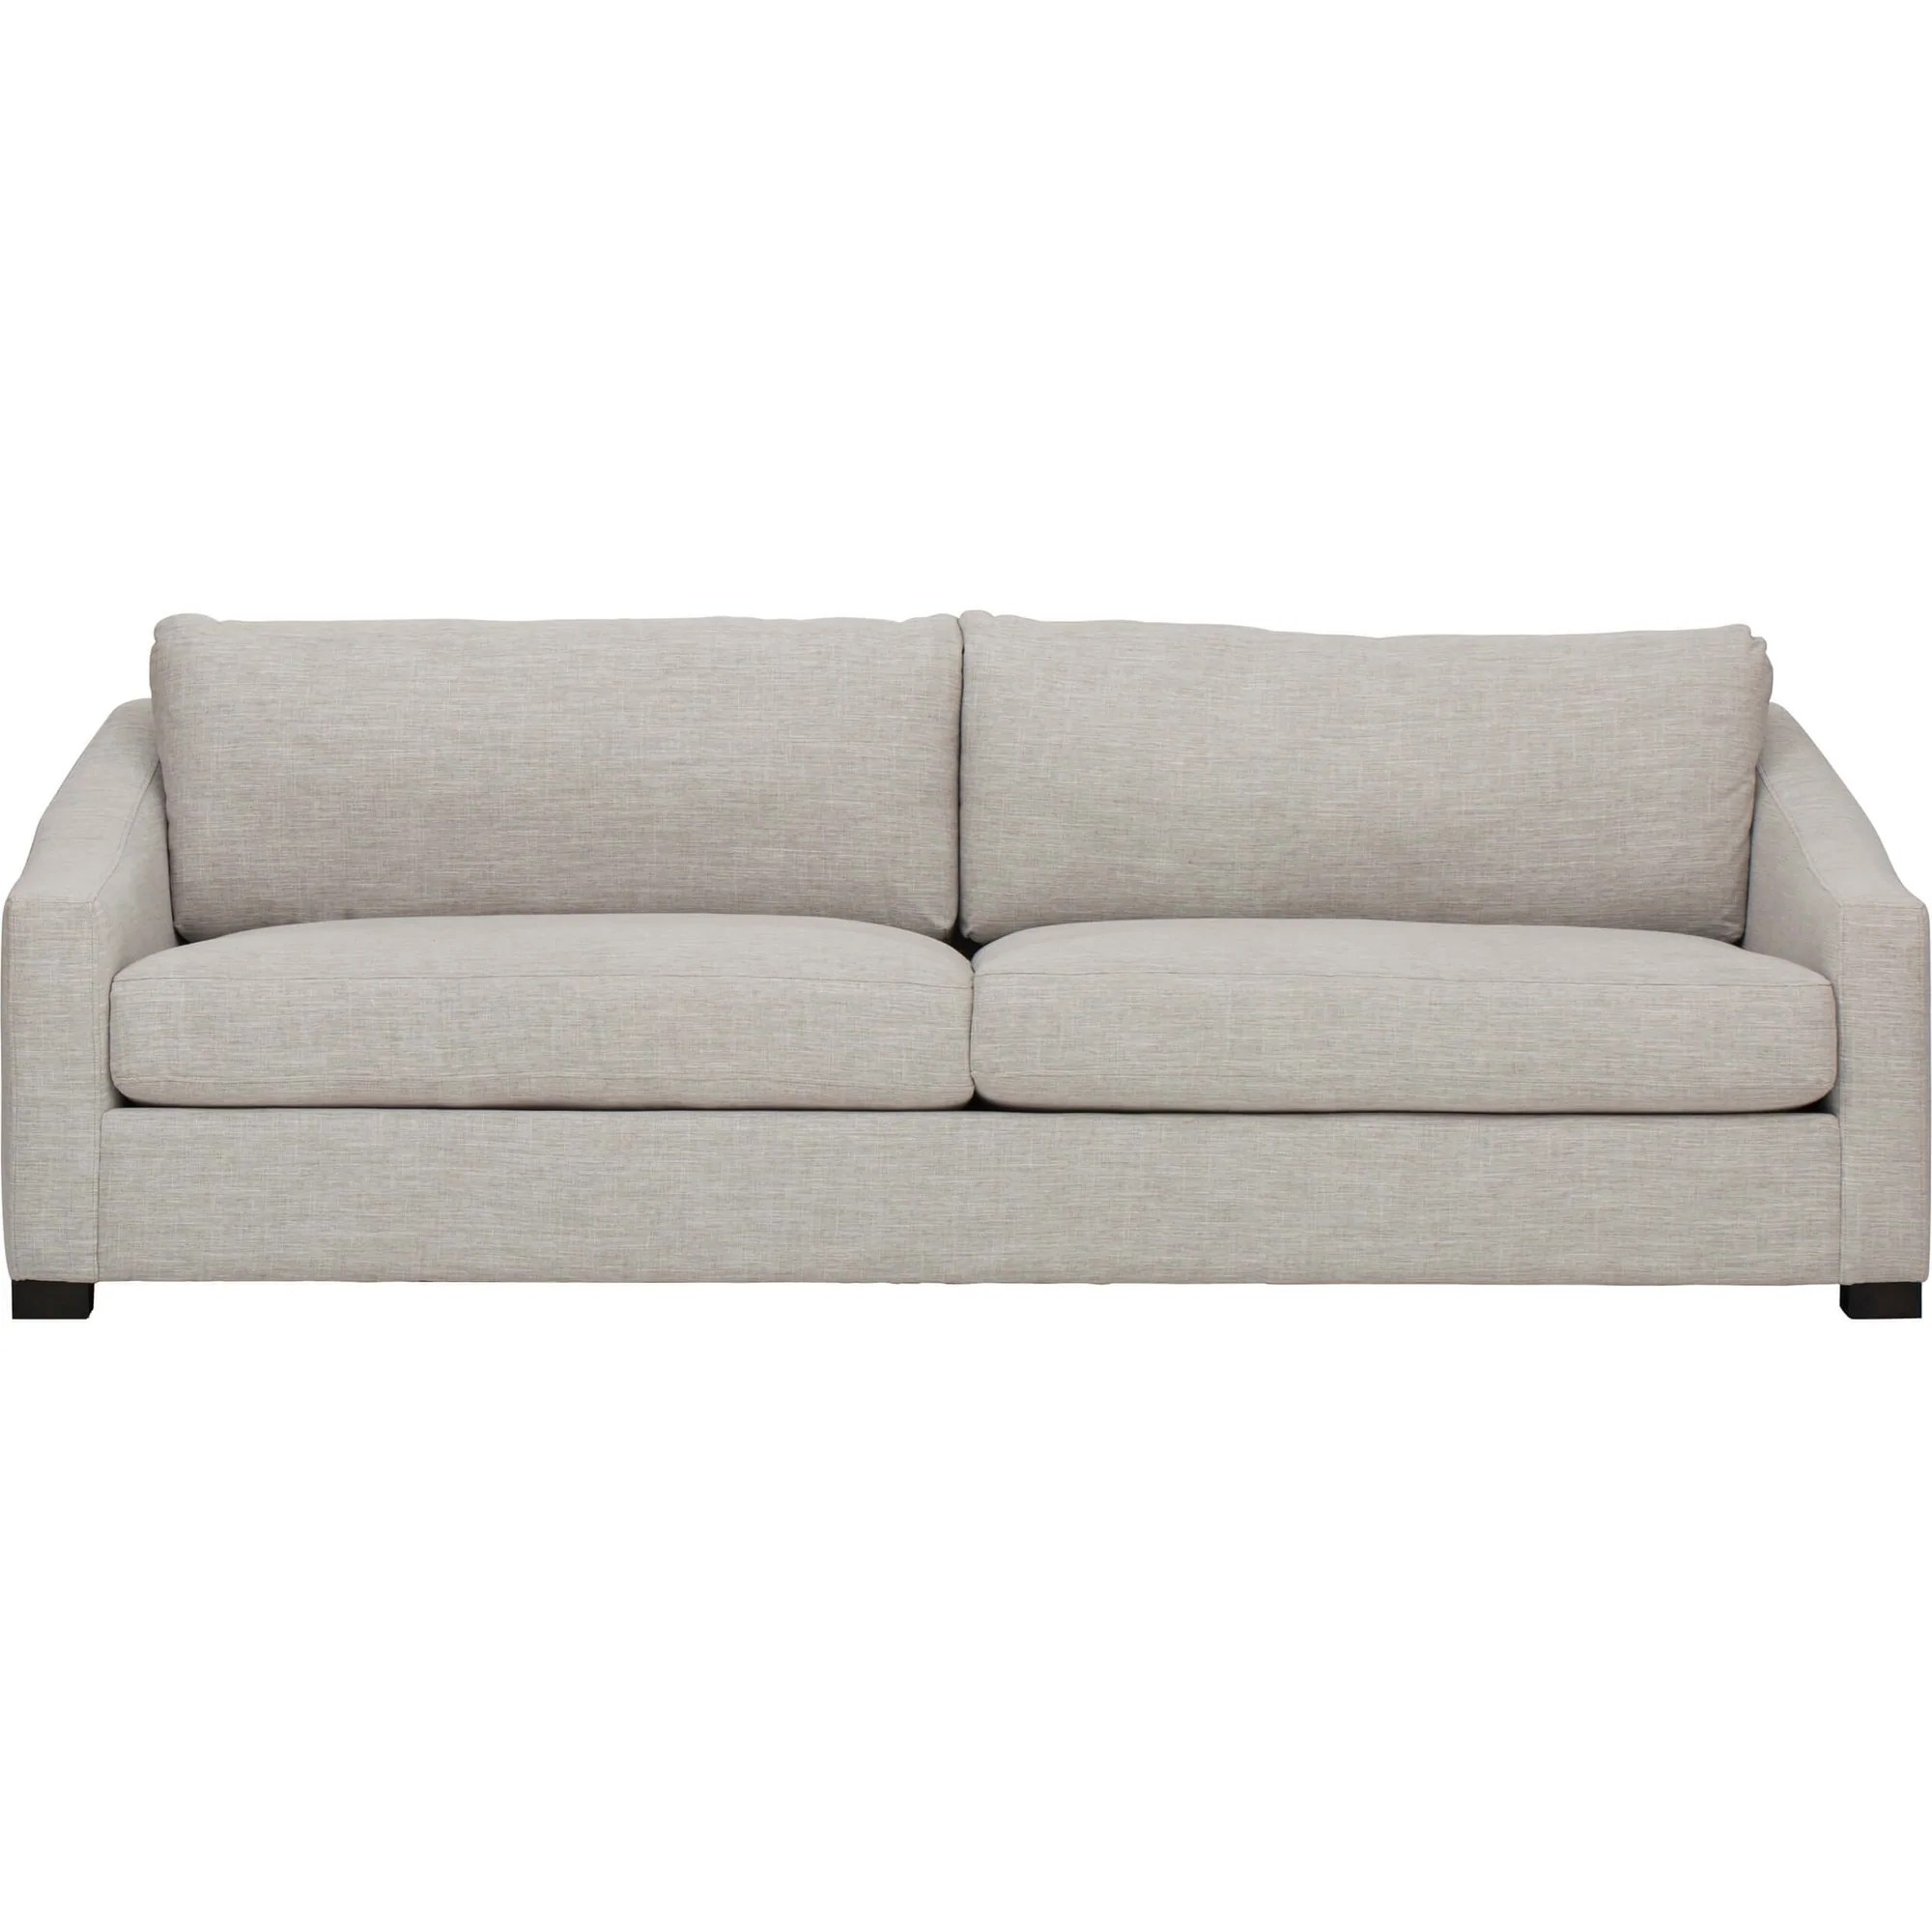 Hilton Sofa Samantha Silver High Fashion Home